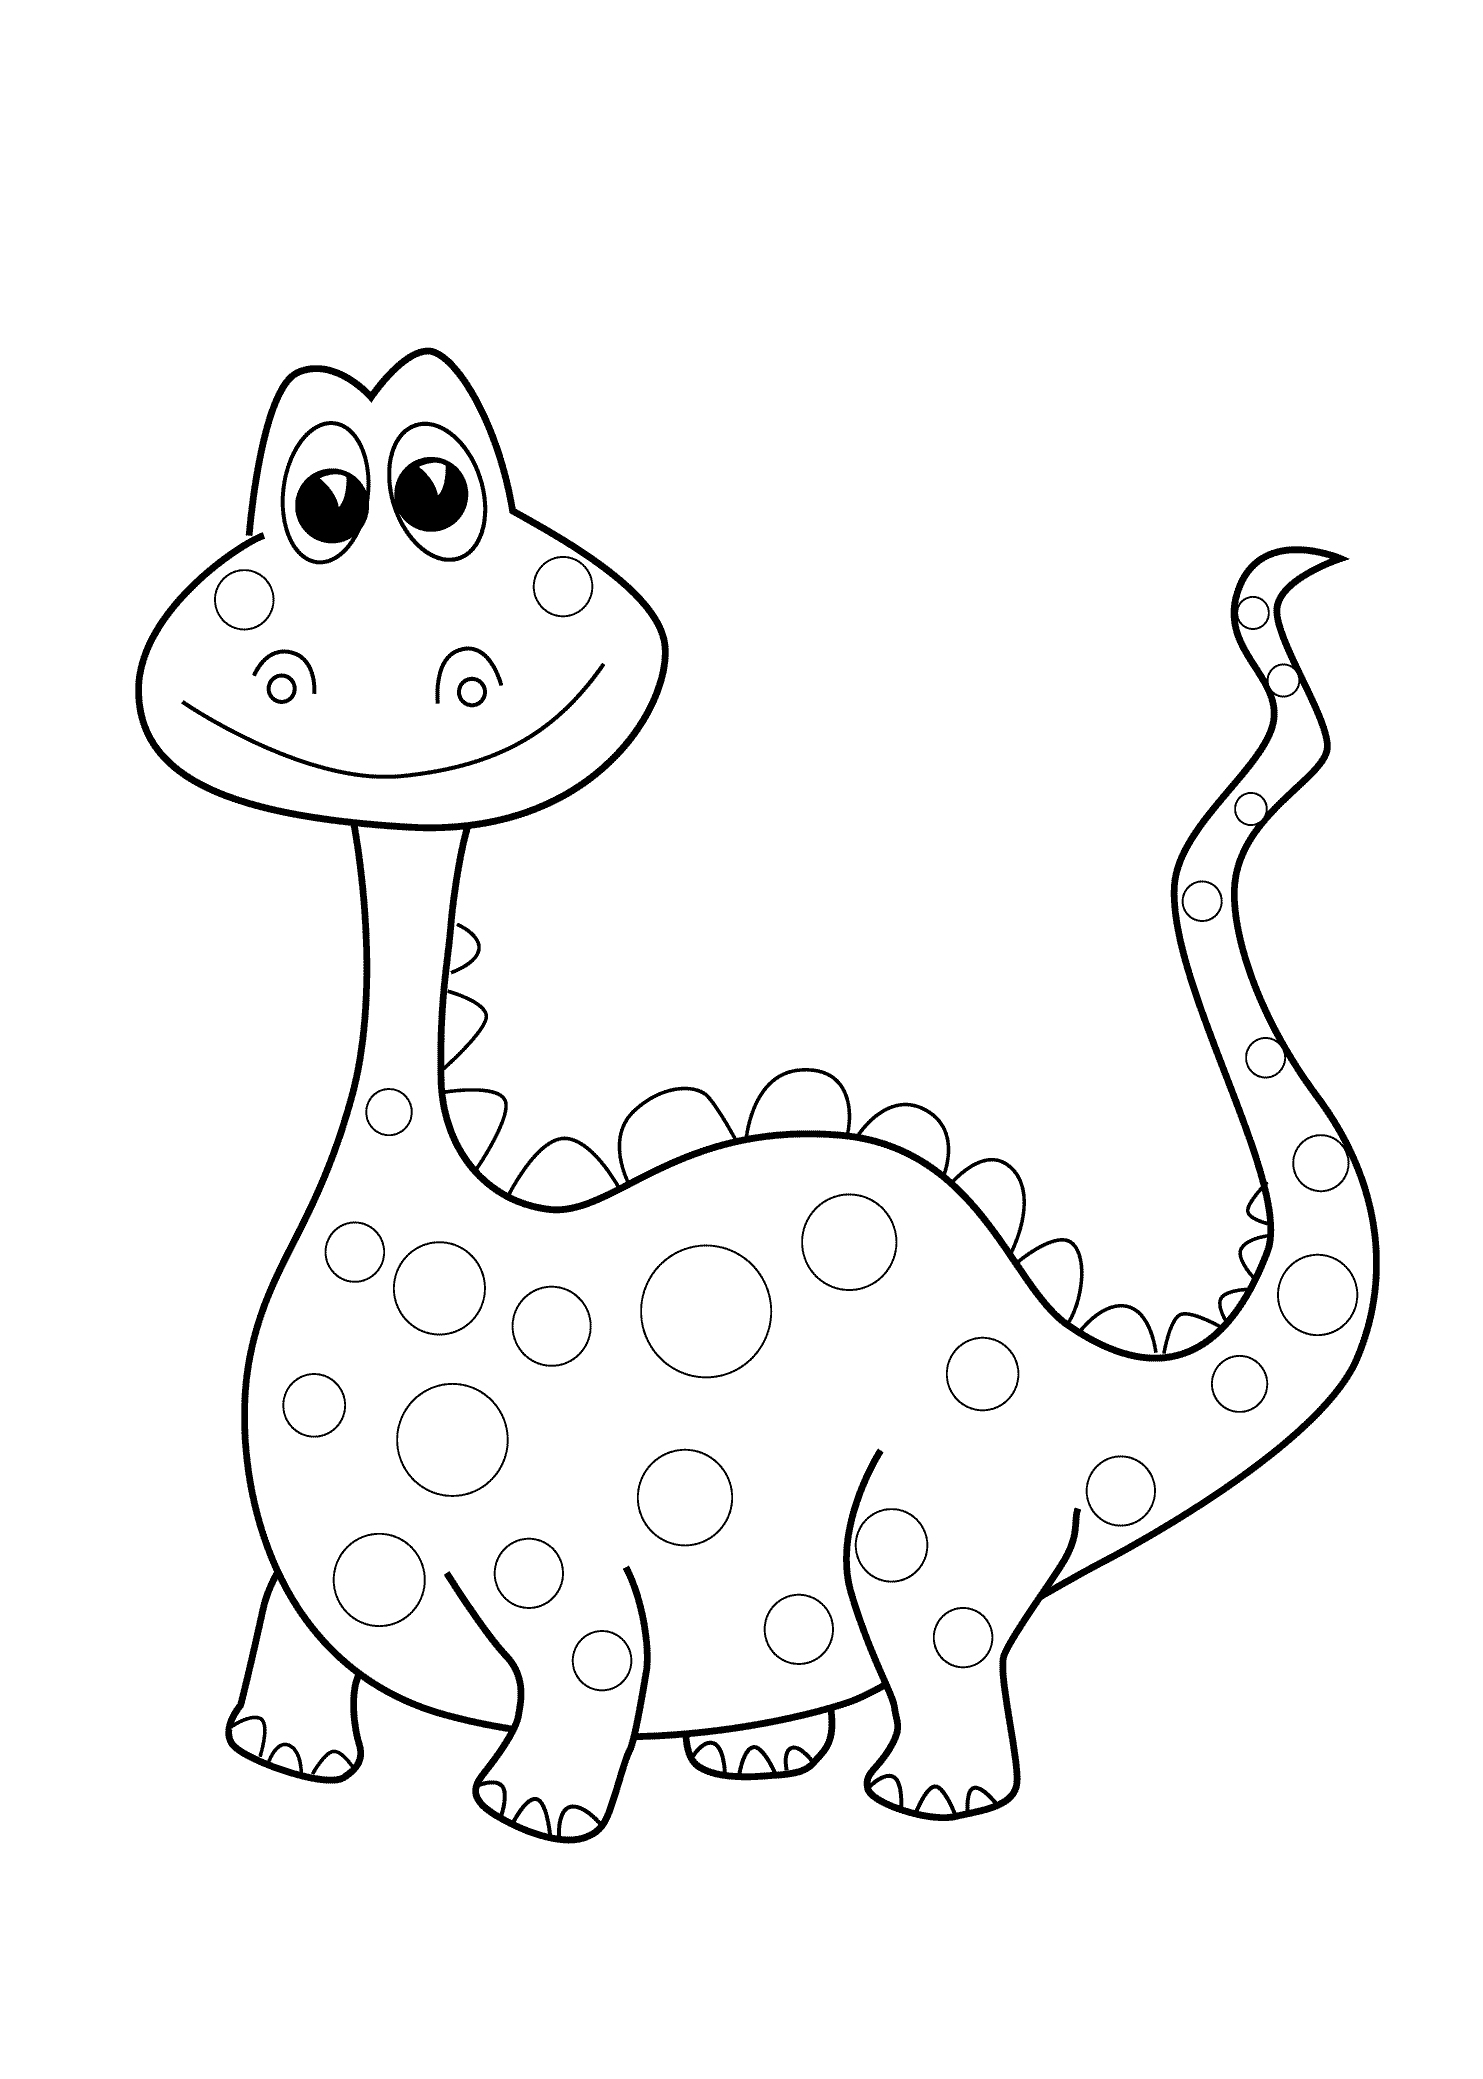 Coloring Pages : Free Printable Coloring Pages For Preschoolers - Free Printable Pages For Preschoolers